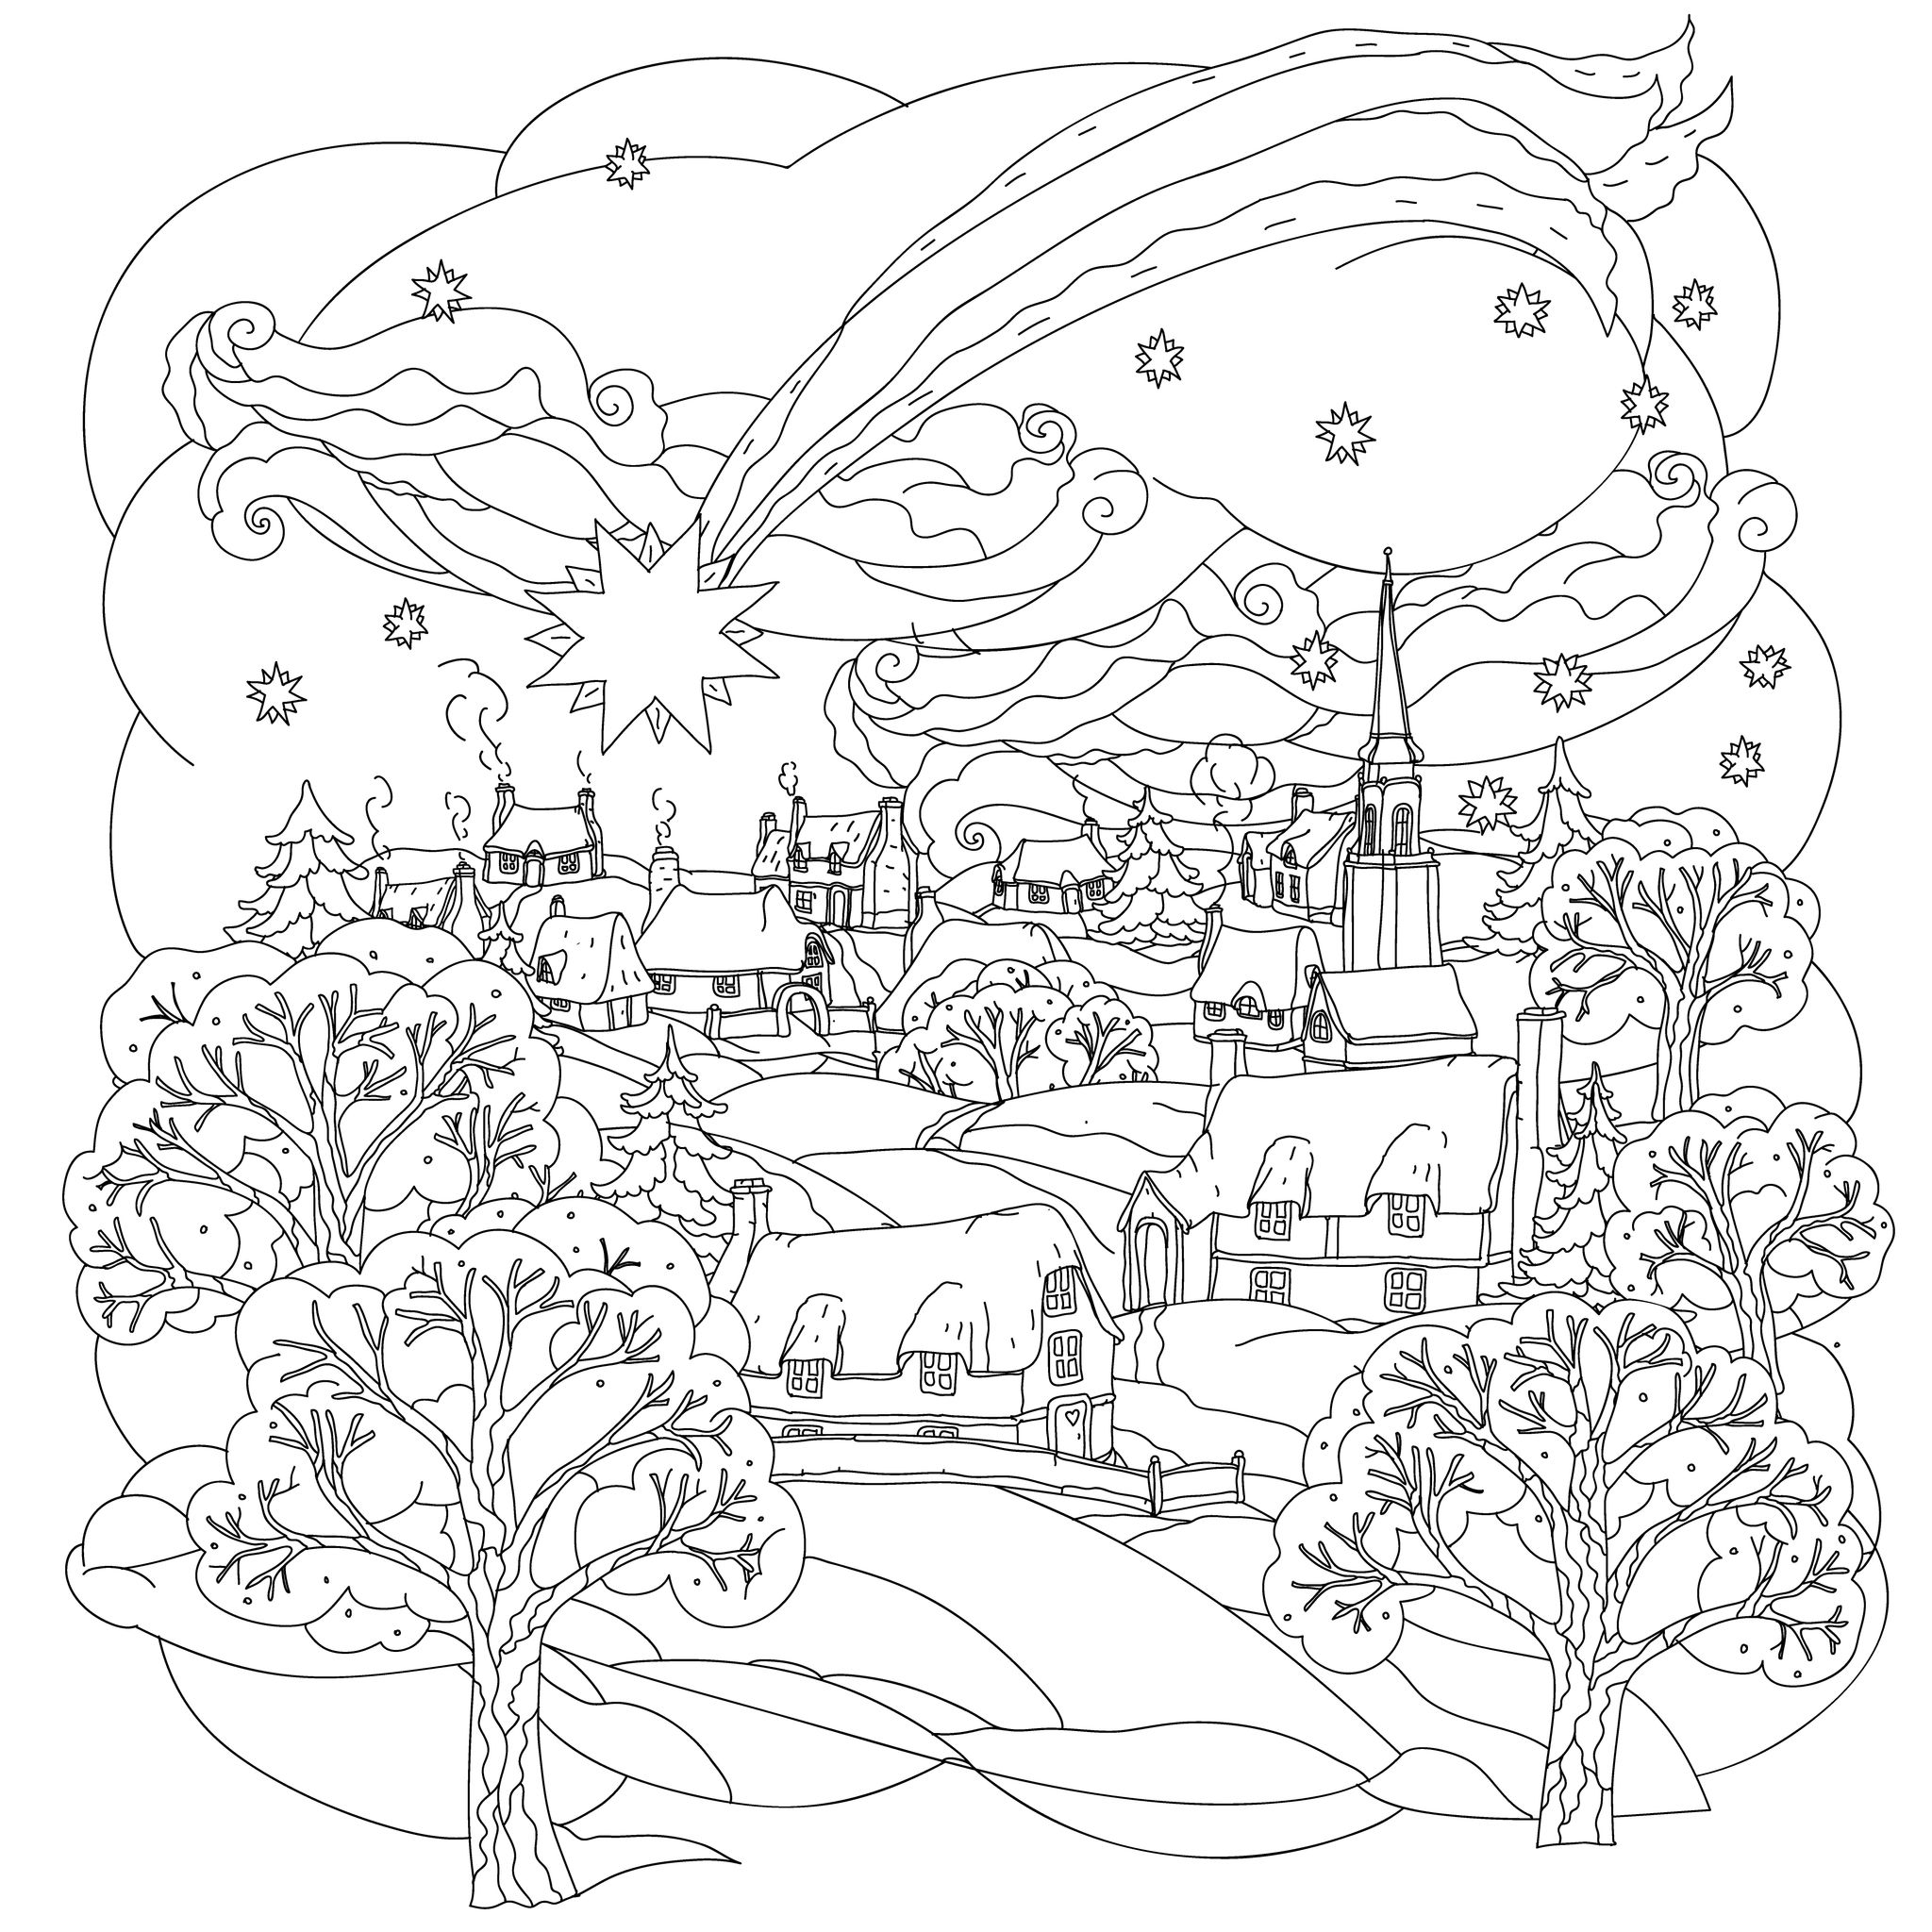 Little town in winter by mashabr | Christmas - Coloring pages for ...